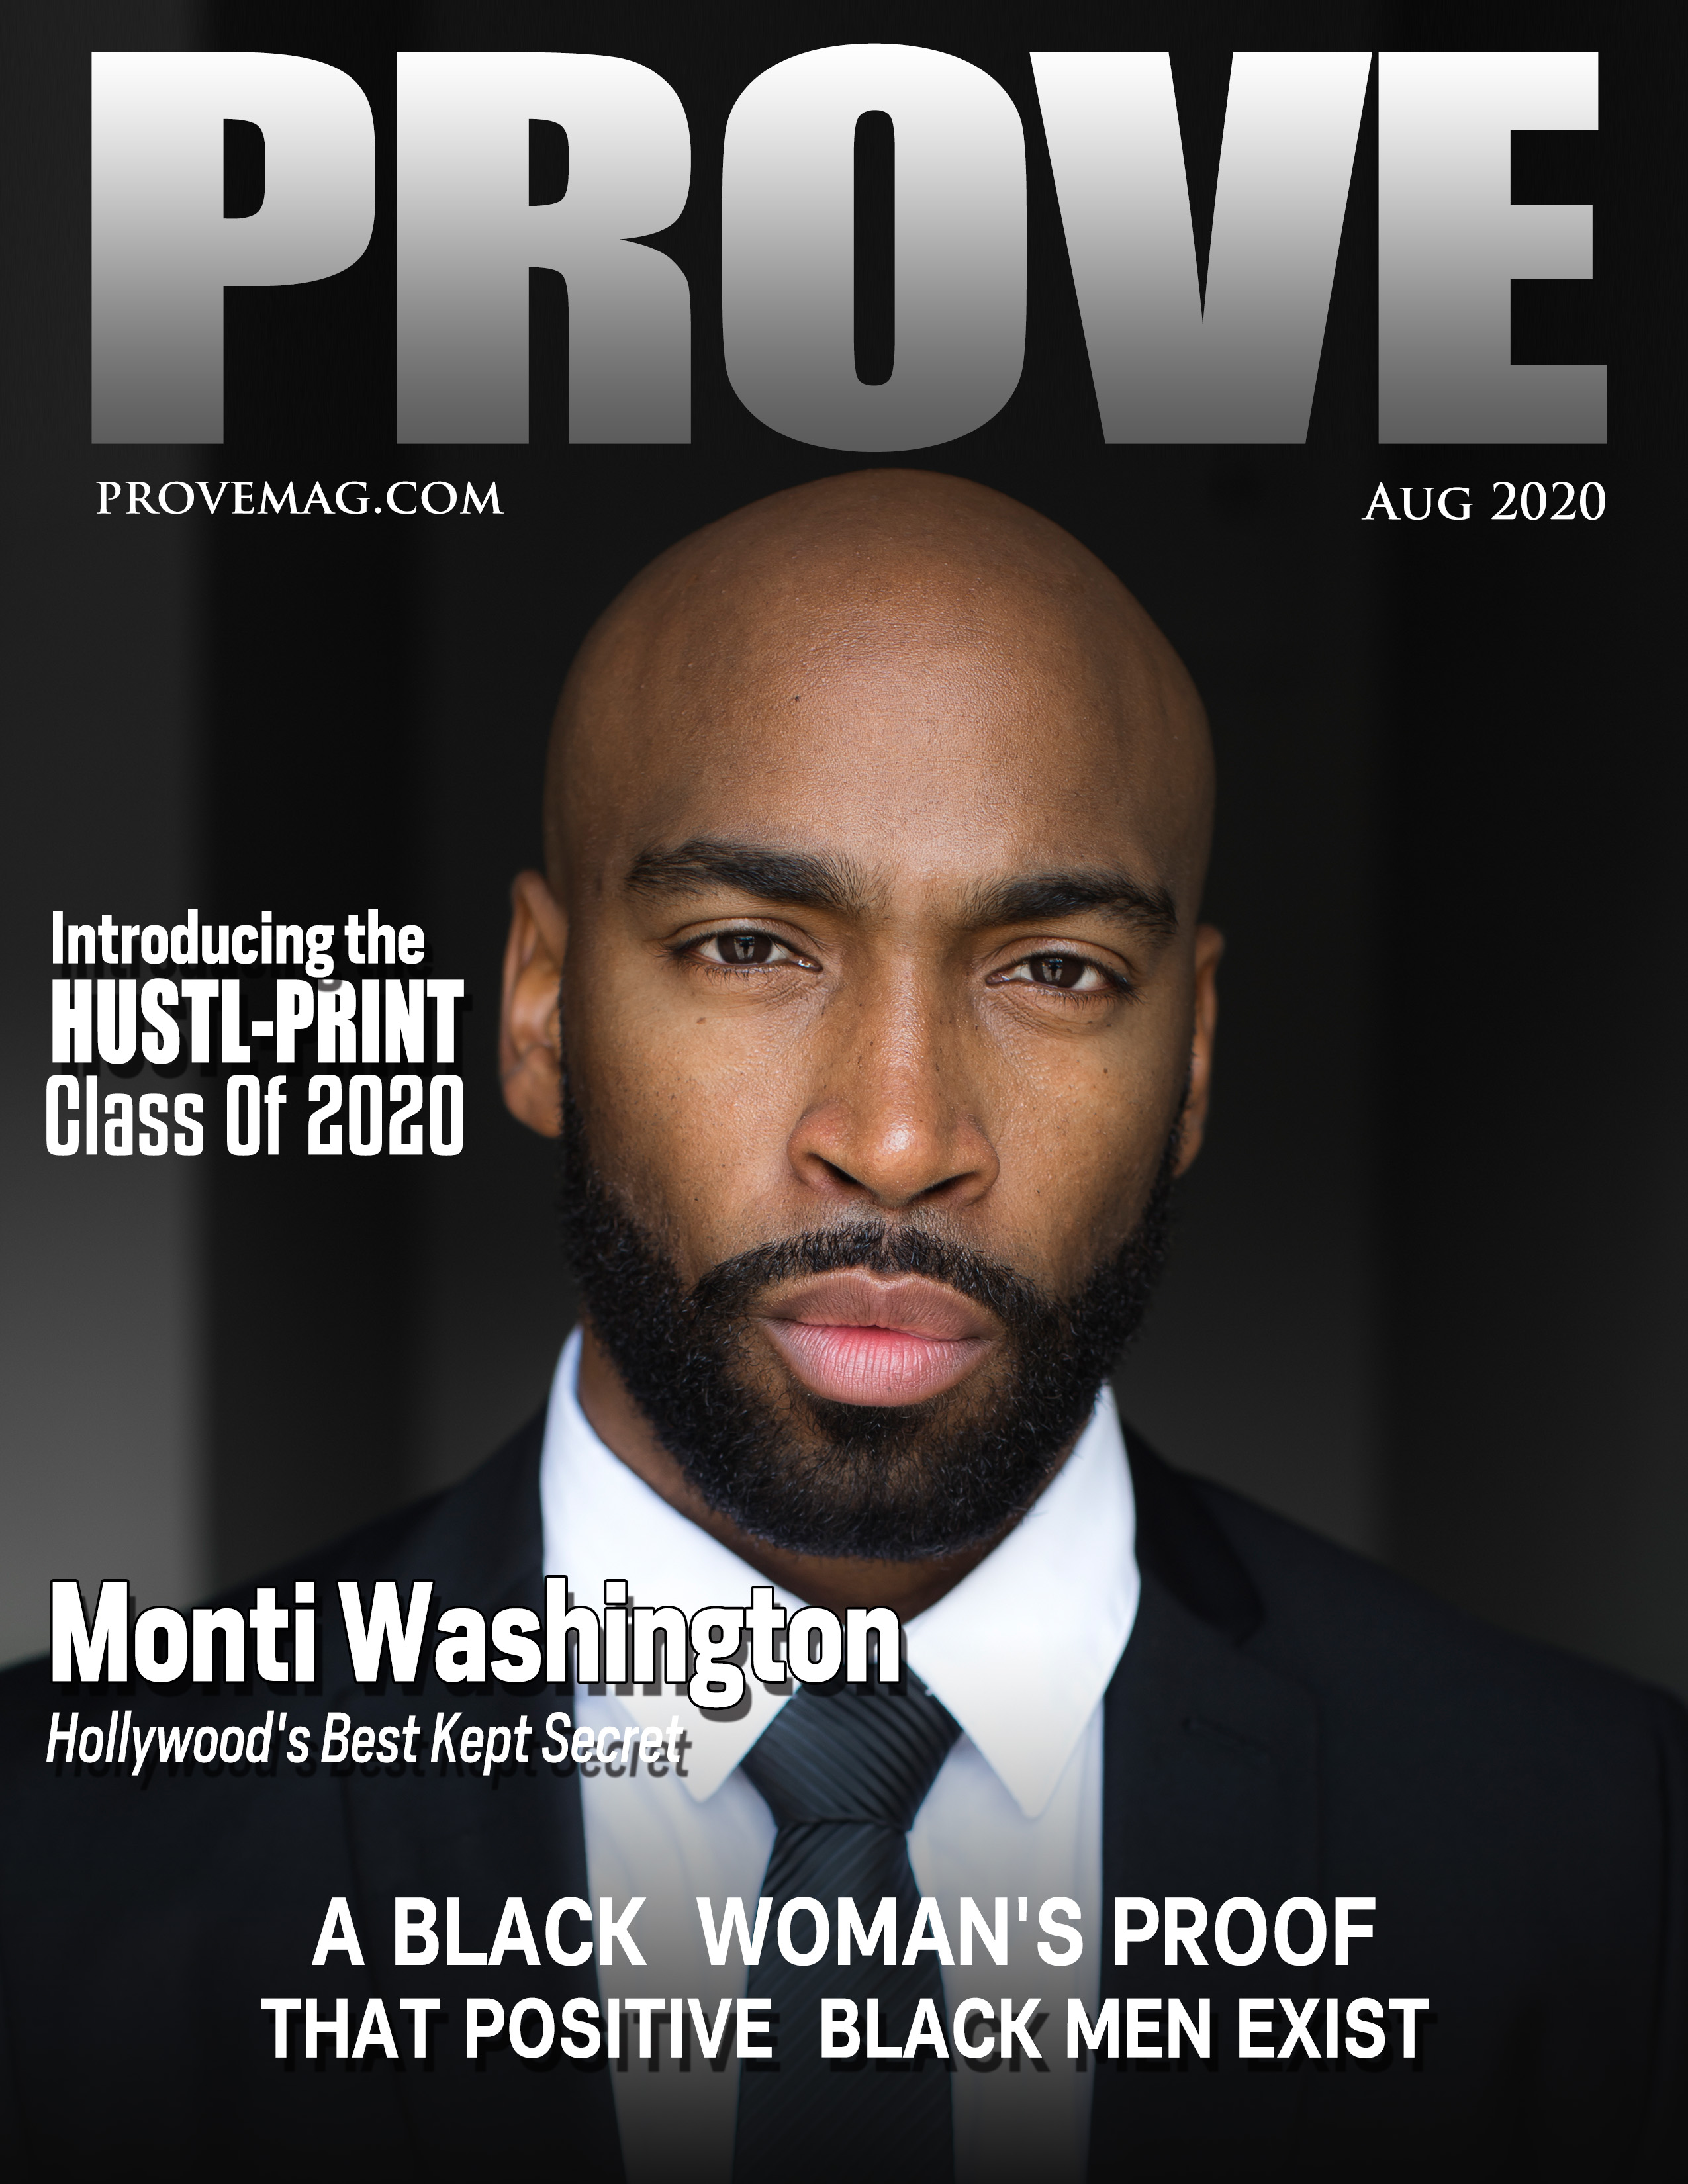 Prove Offers to Reveal the Truth, Shows the Socially and Historically Ignored Virtues of Black Men